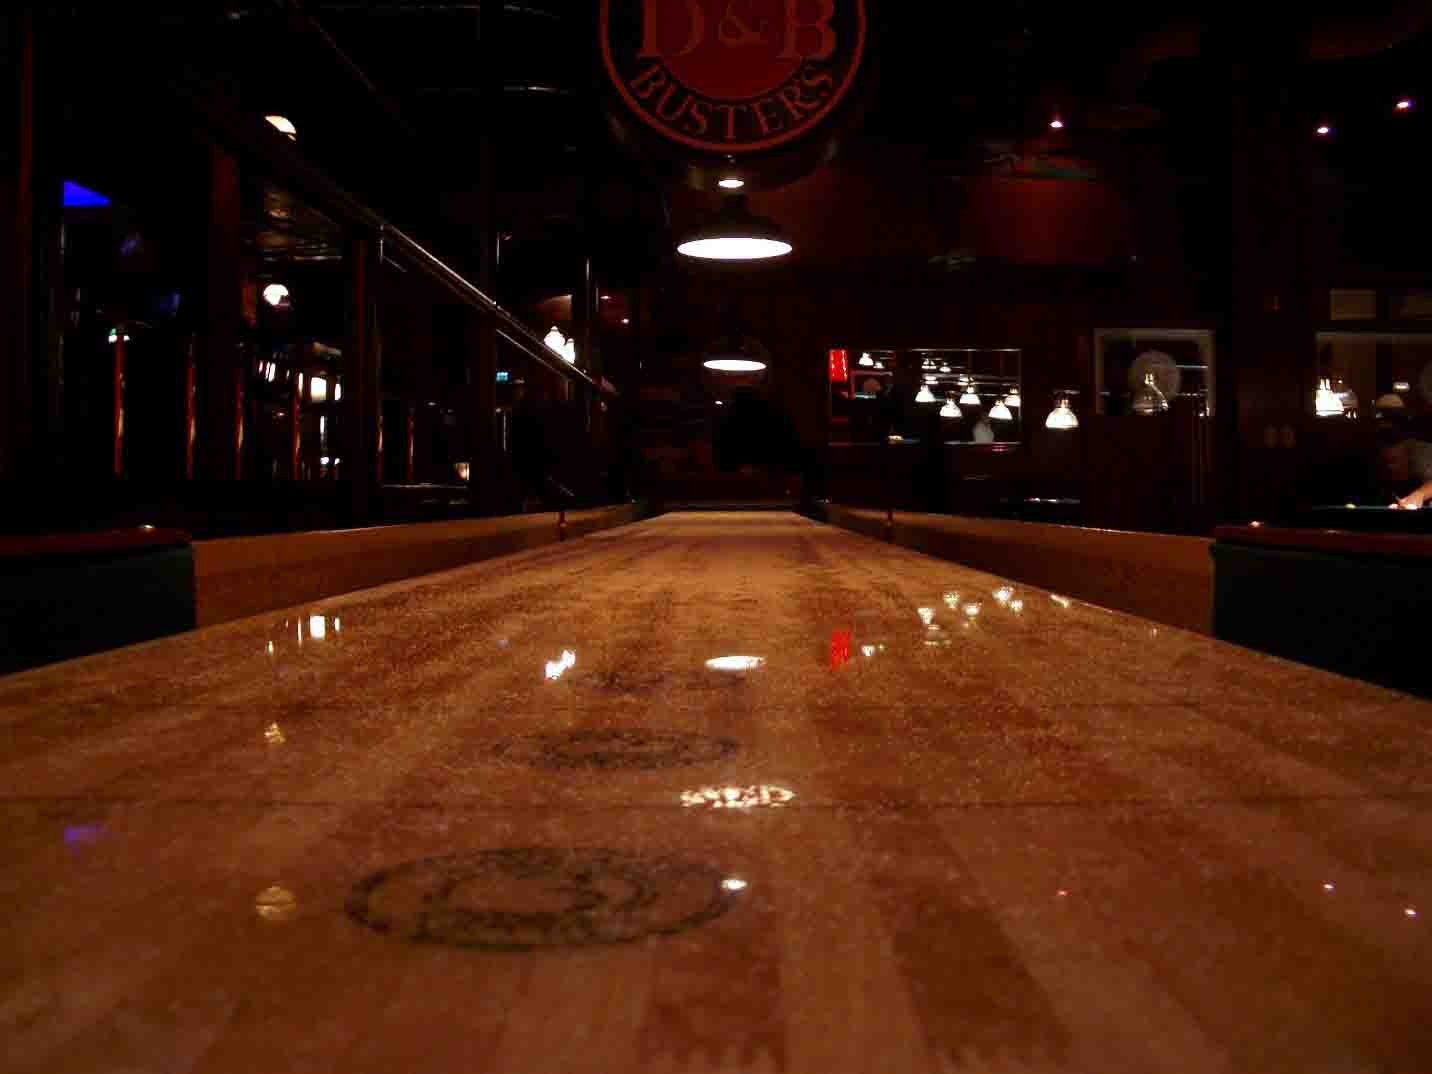 Pristine View from the End of a Shuffleboard